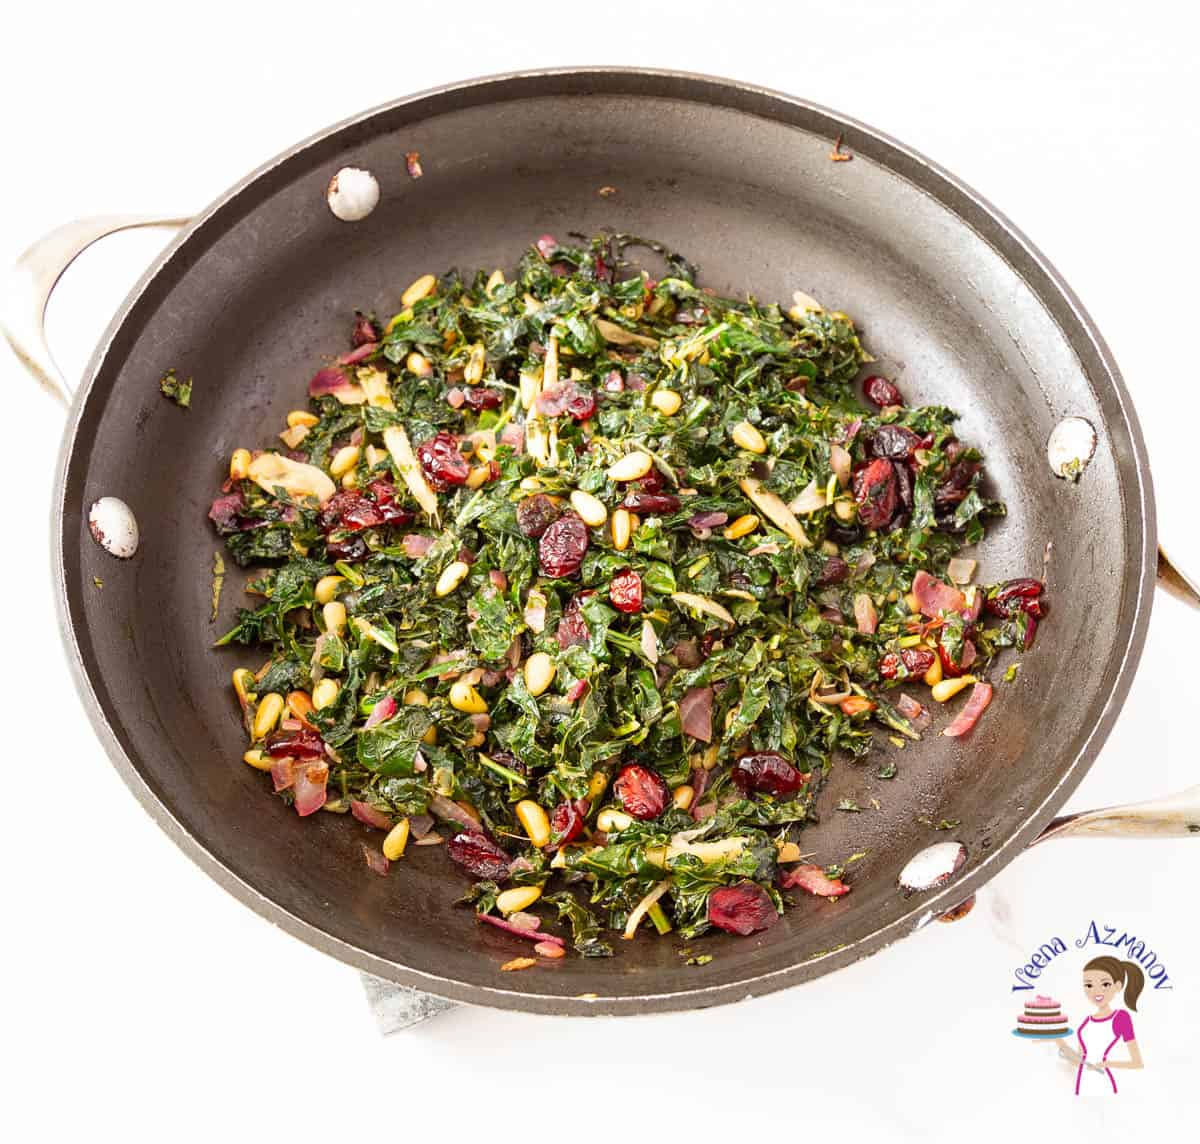 A skillet with kale sauteed with pine nuts